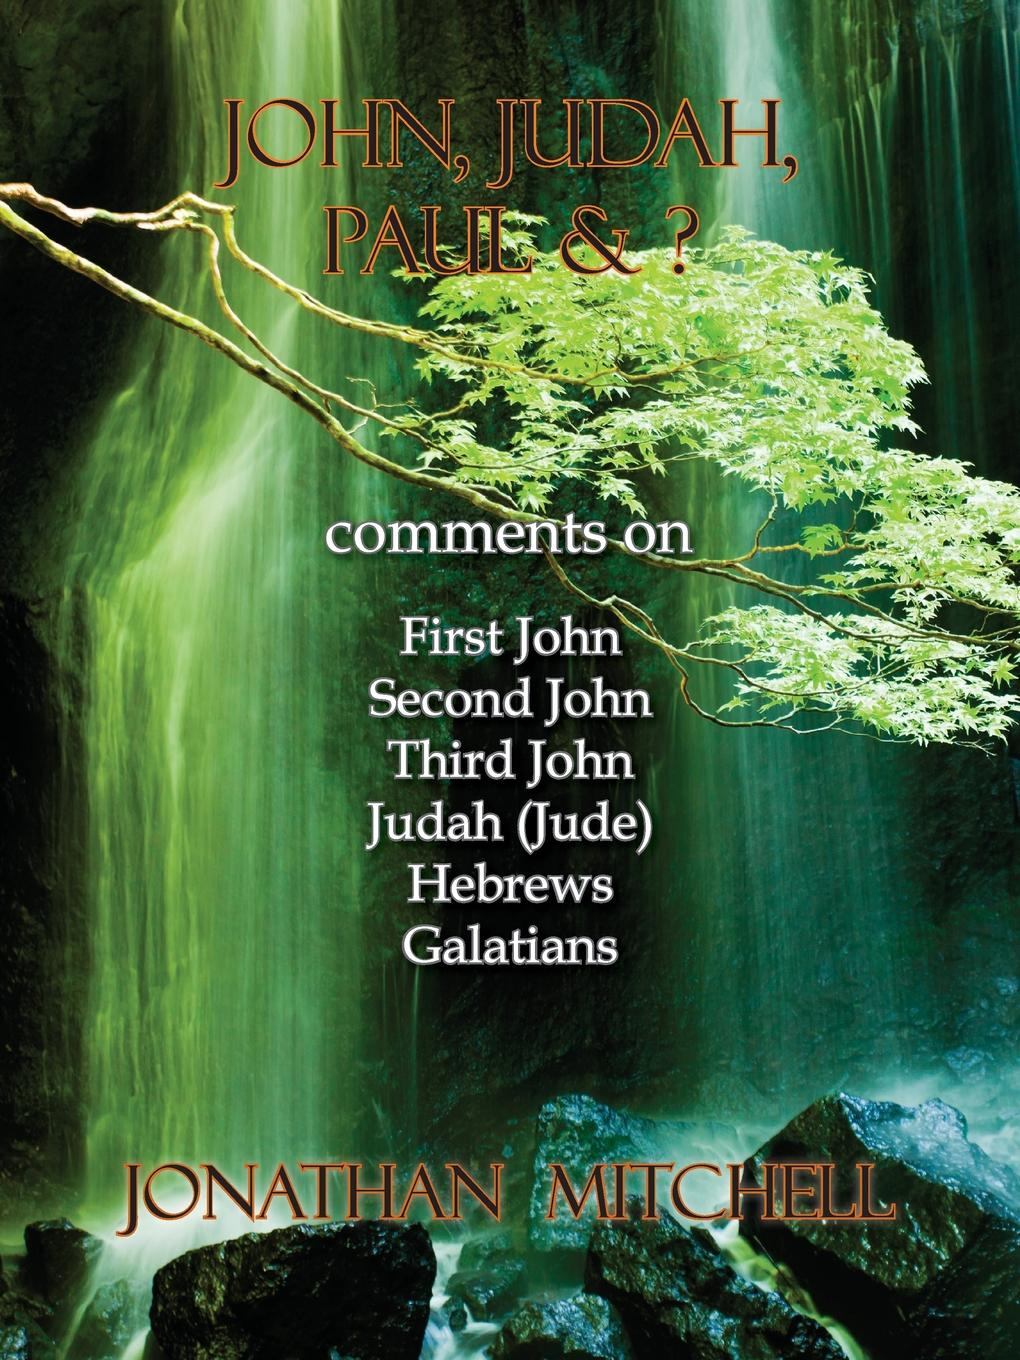 Jonathan Paul Mitchell John, Judah, Paul . .. Comments on First John, Second John, Third John, Judah (Jude), Hebrews, Galatians christopher wordsworth six letters to granville sharp esq respecting his remarks on the uses of the definitive article in the greek text of the new testament